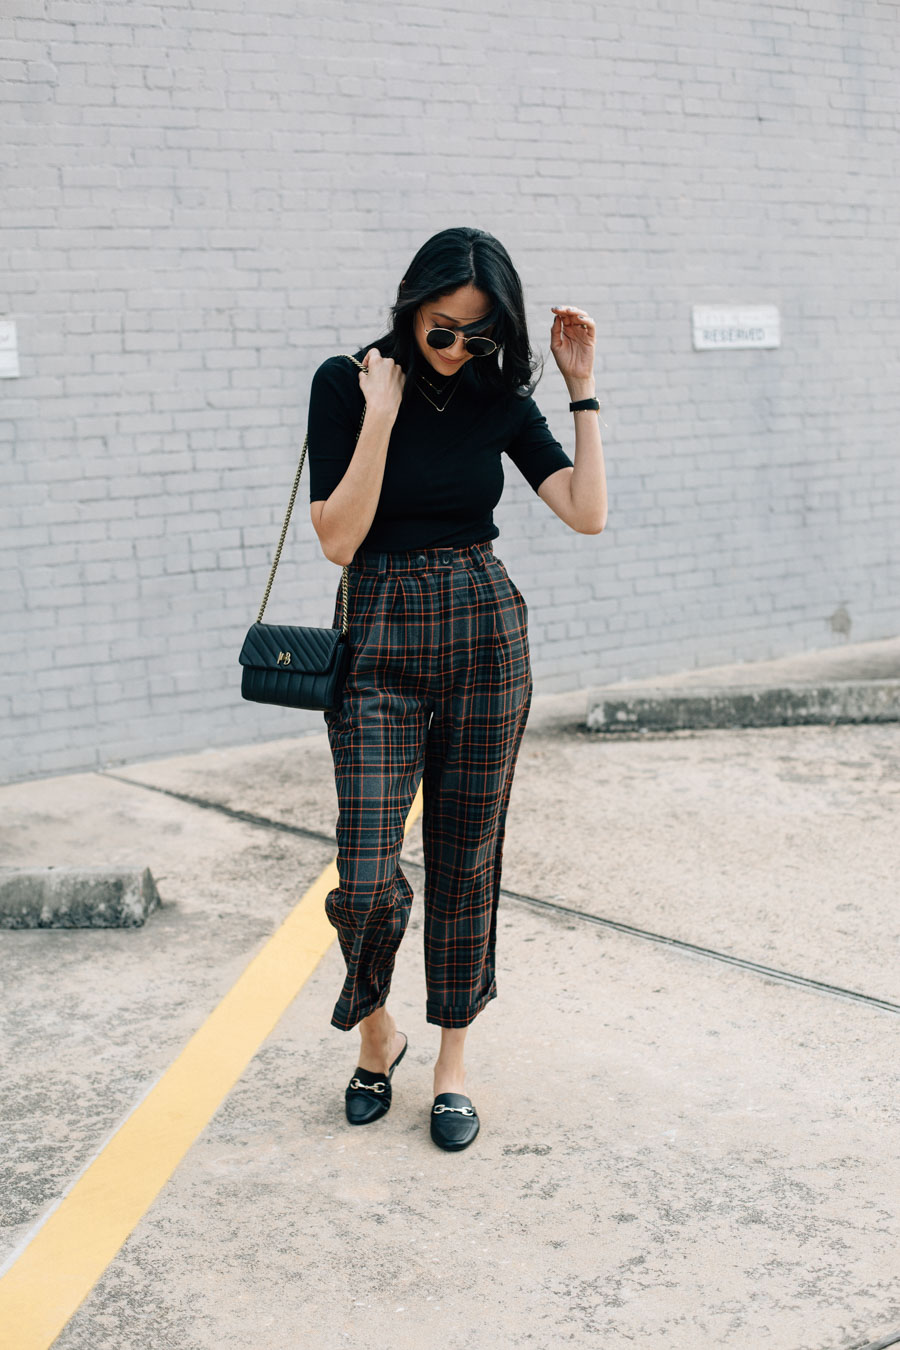 Fashion blogger Lilly Beltran wearing Top shop check peg trousers fro a casual look.